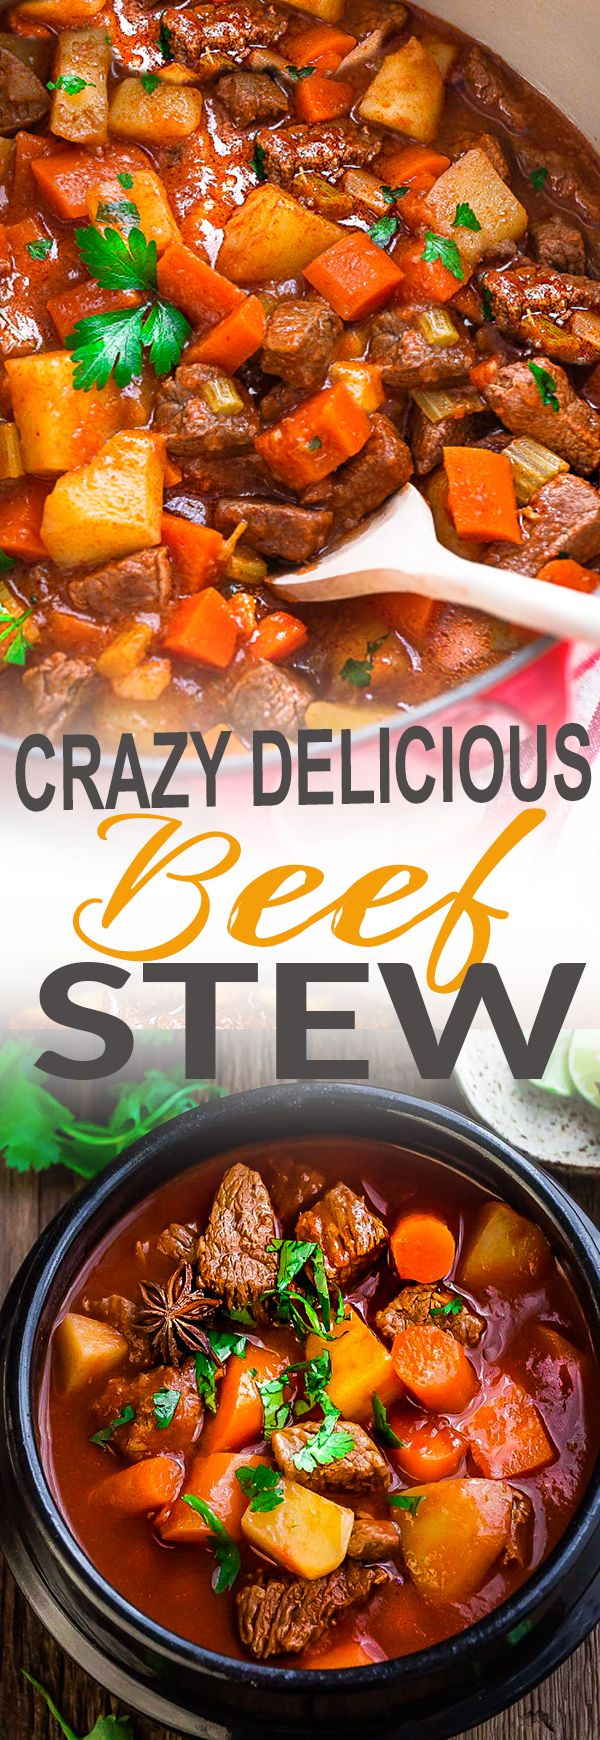 This crazy delicious recipe for Classic Homemade Beef Stew makes the perfect comforting dish on a cold day. Best of all, it's easy to make and has the most delicious tender meat with carrots, potatoes, sweet potatoes and celery. So flavorful and good for warming up on a cold dad. A hearty lunch or dinner that totally reminds you of mom's home cooking!